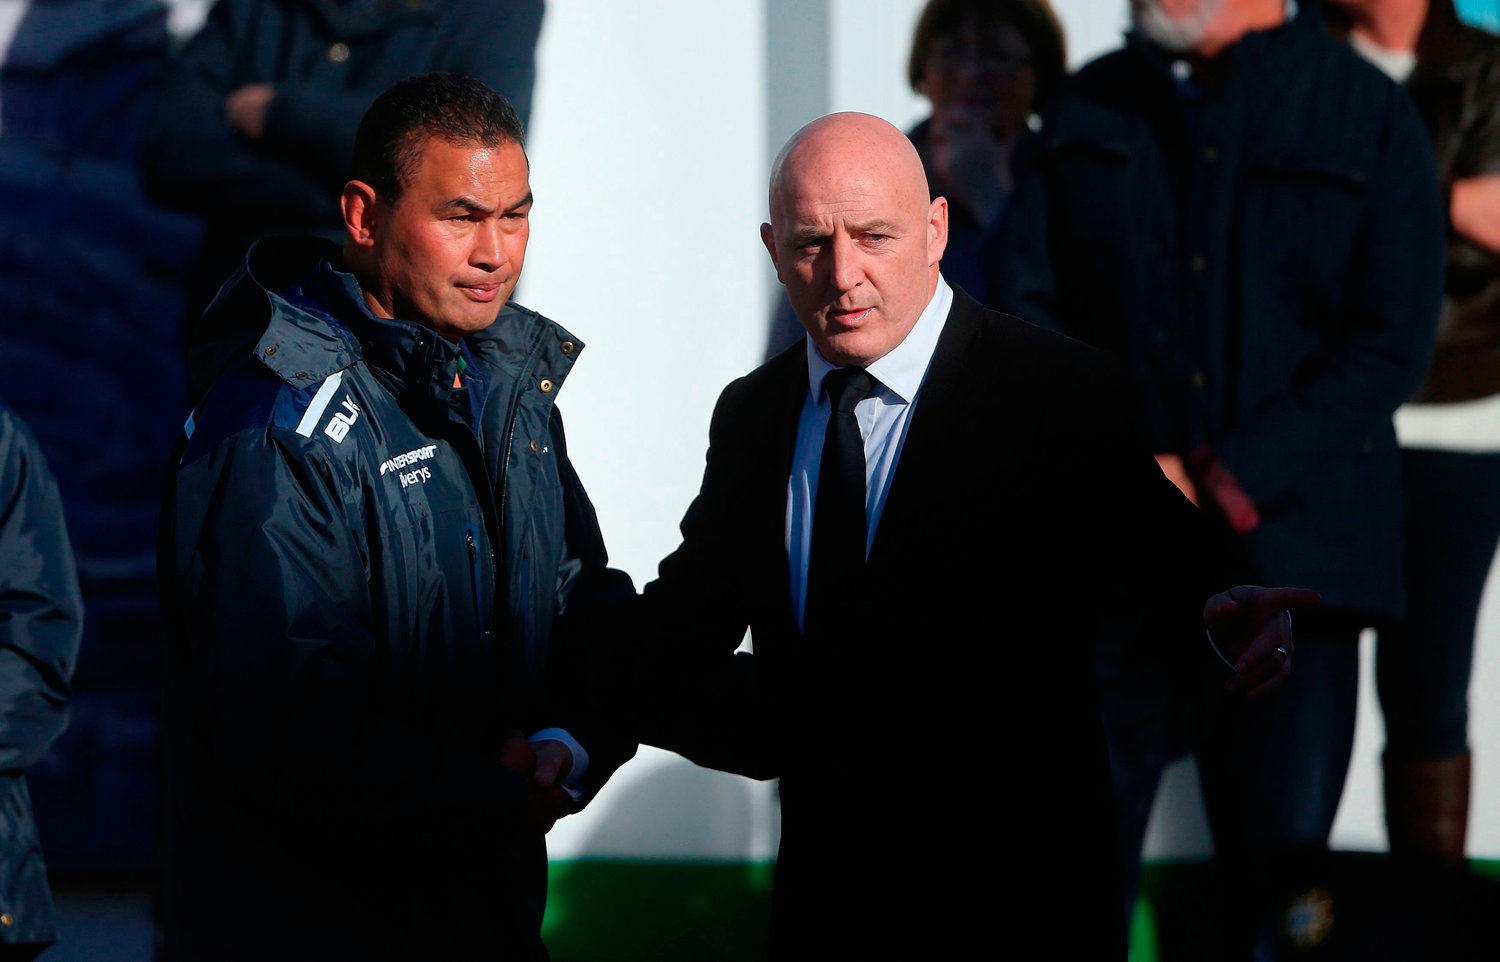 Munsters Keith Wood (right) welcomes Connacht Rugby head coach Pat Lam as the coffin of Munster Rugby head coach Anthony Foley is brought to repose in St. Flannan's Church, Killaloe in Co Clare, ahead off his funeral tomorrow. PRESS ASSOCIATION Photo. Picture date: Thursday October 20, 2016. See PA story DEATH Foley. Photo credit should read: Niall Carson/PA Wire